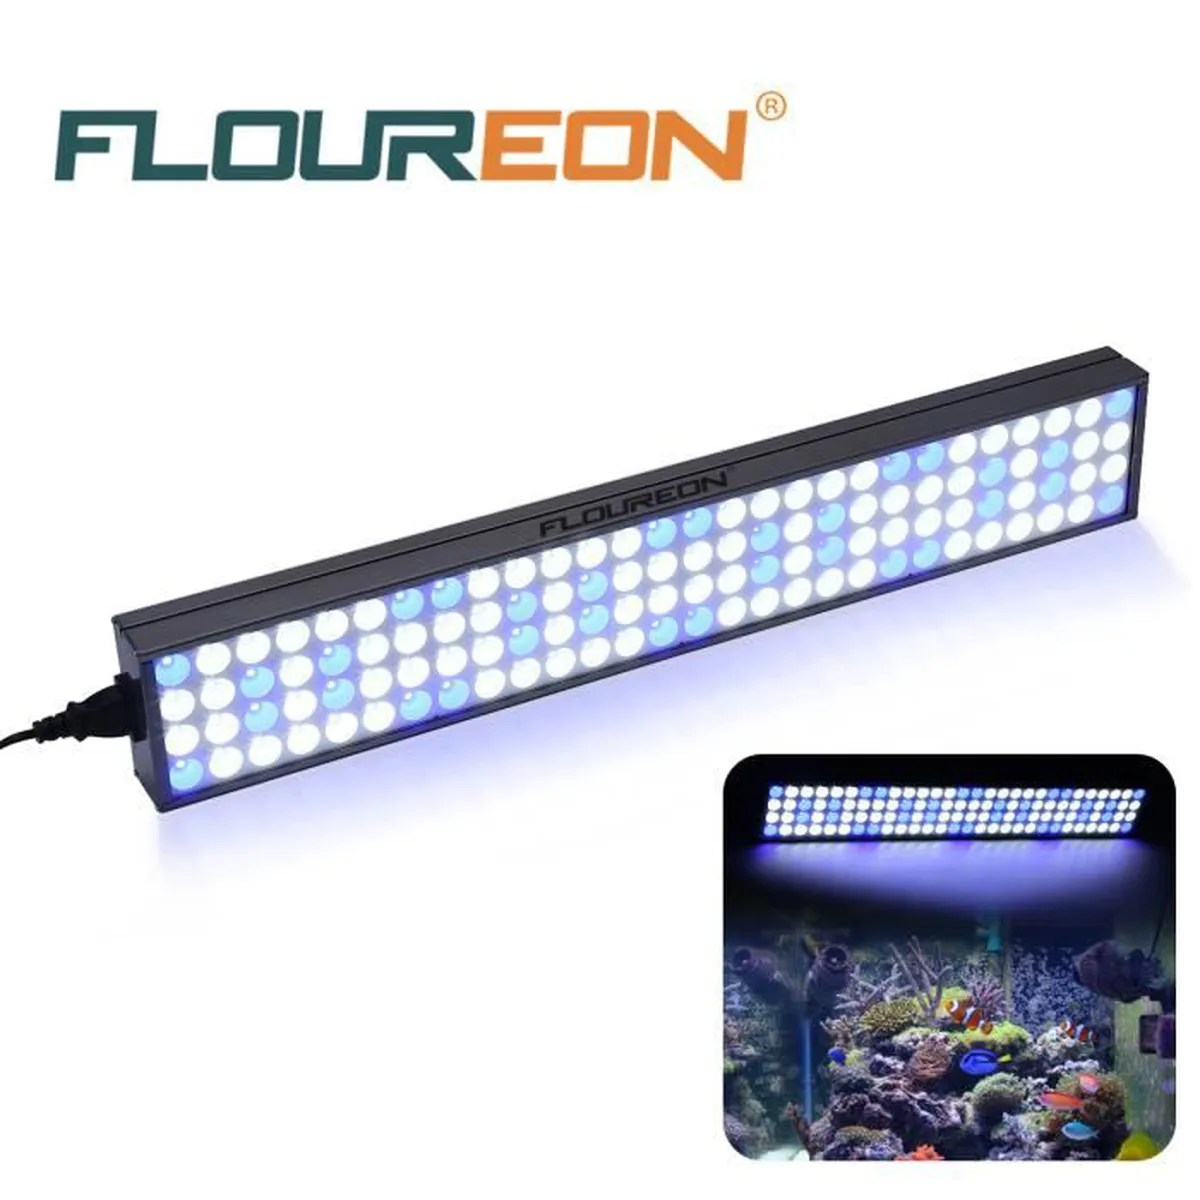 Eclairage Led Aquarium Eau Douce Floureon 60w 25 112pcs Led Aquarium Lampe Eclairage Poisson L Eau